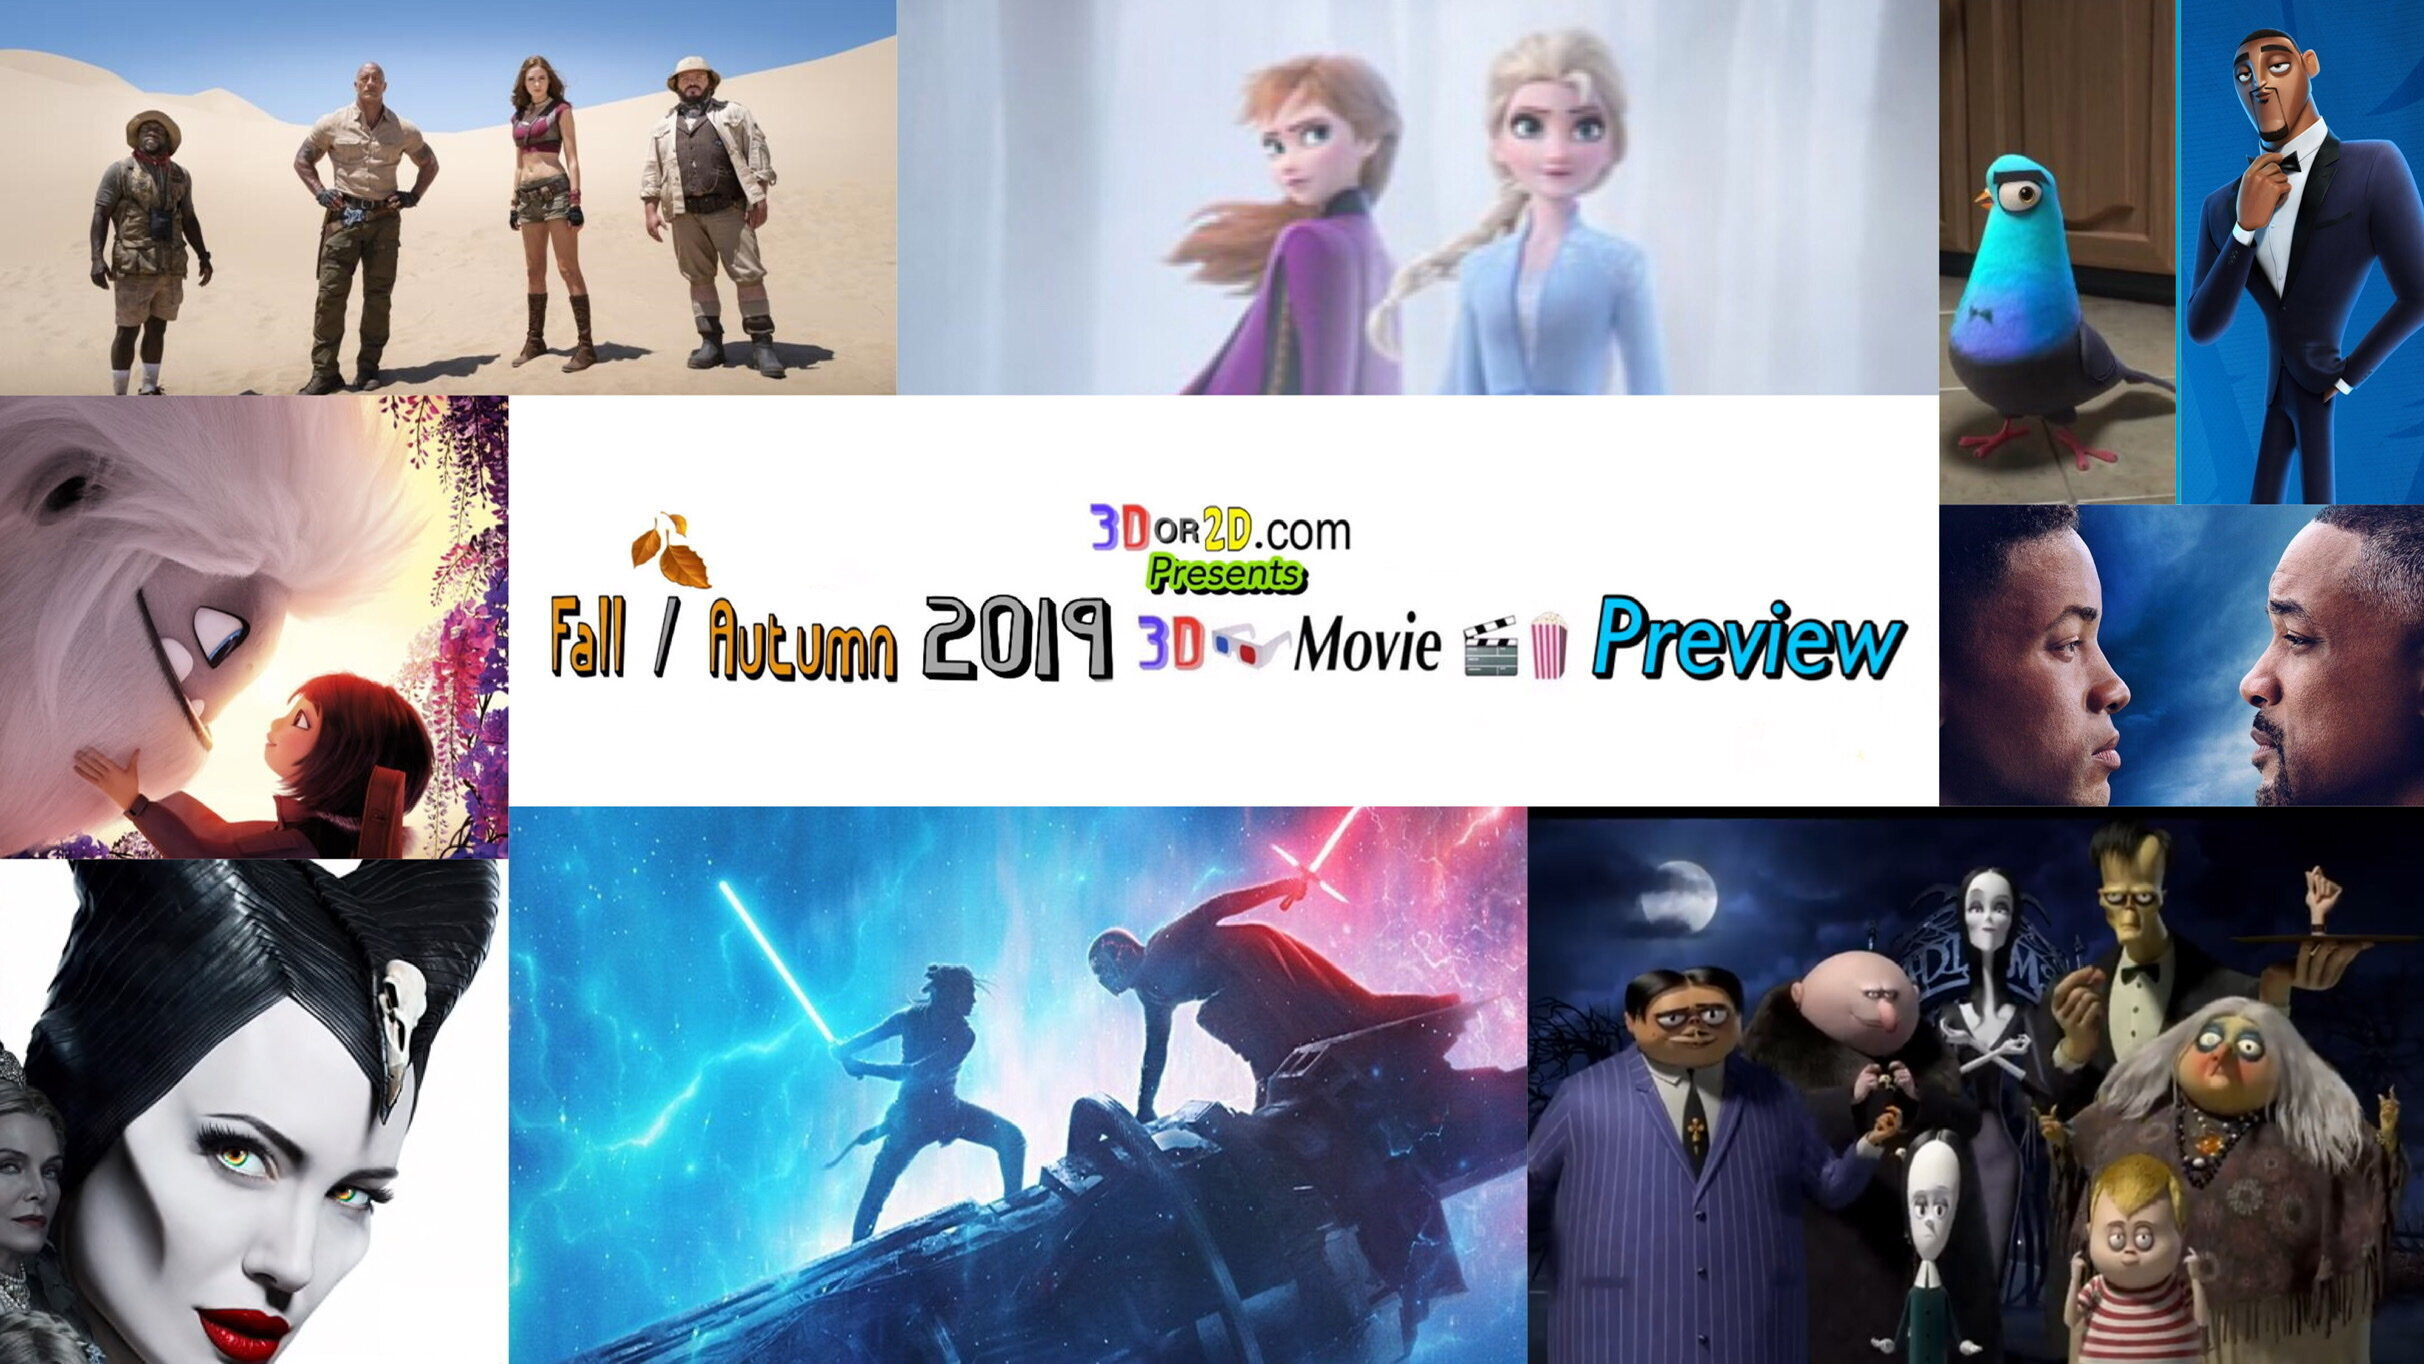 autumn-fall-3d-3-d-movie-preview-2019.jpg